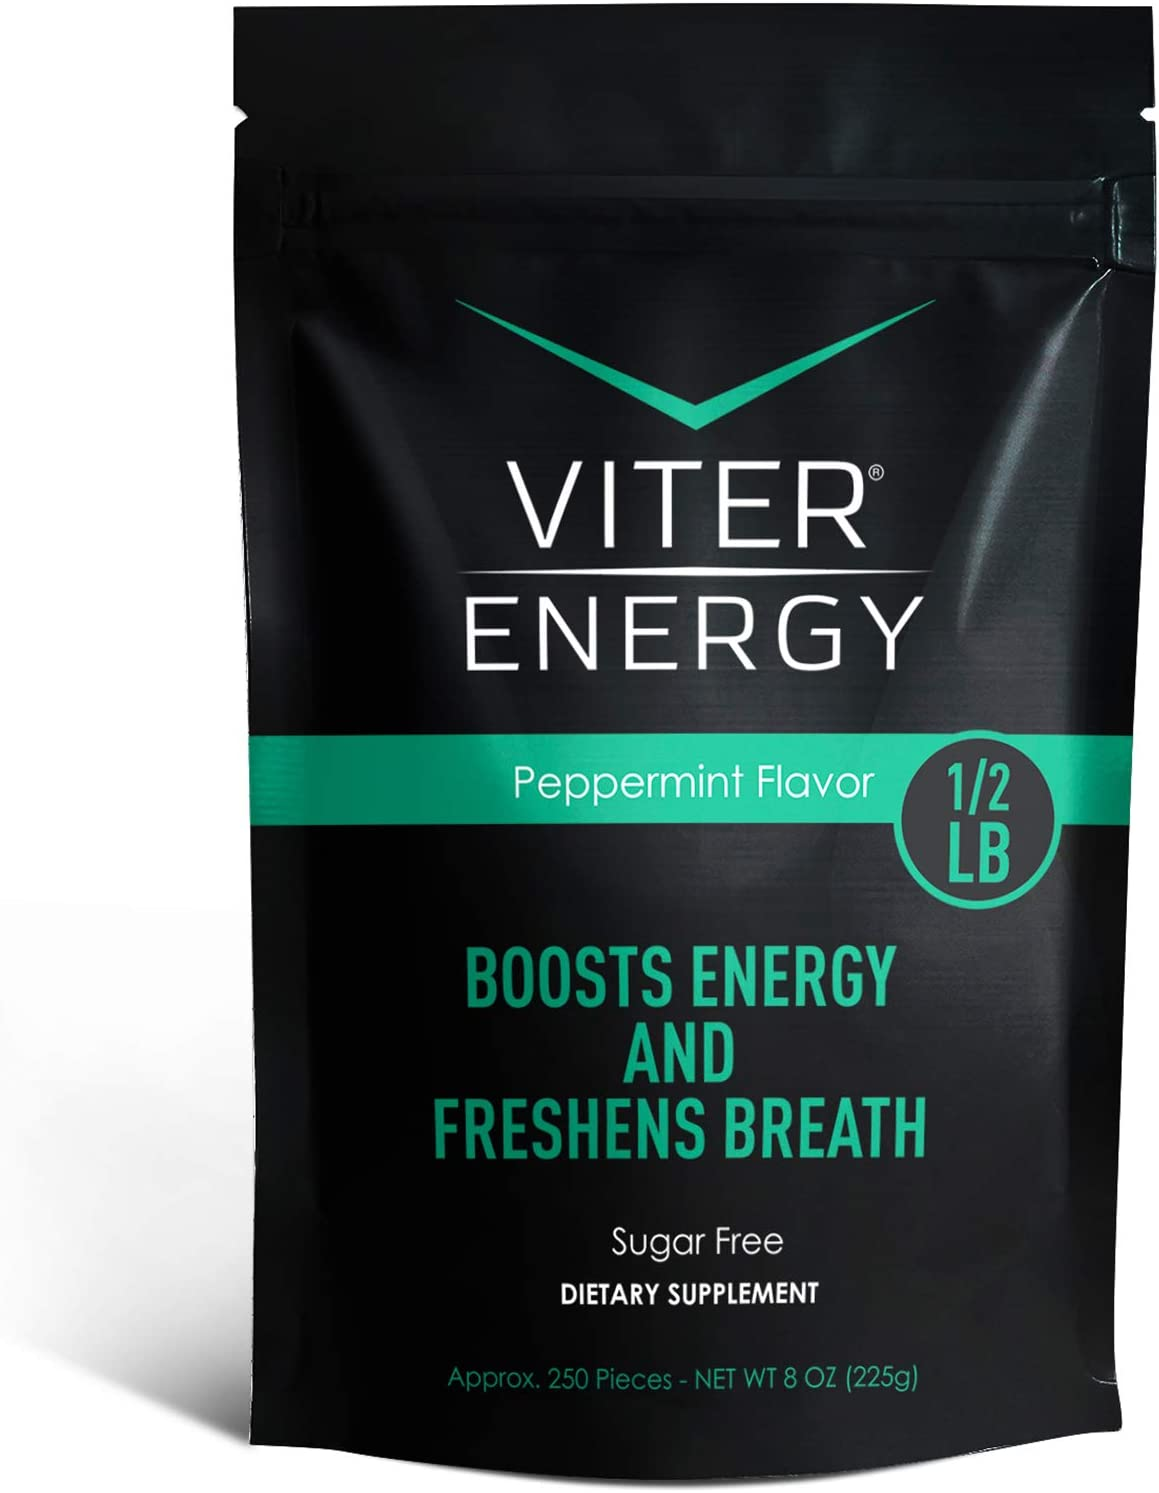 Viter Energy Caffeinated Mints - 40mg Caffeine & B-Vitamins Per Powerful Sugar Free Mint. Boost Energy, Focus & Fresh Breath. 2 Pieces Replace 1 Coffee (Peppermint, 1/2 LB Bulk (Mints Only))